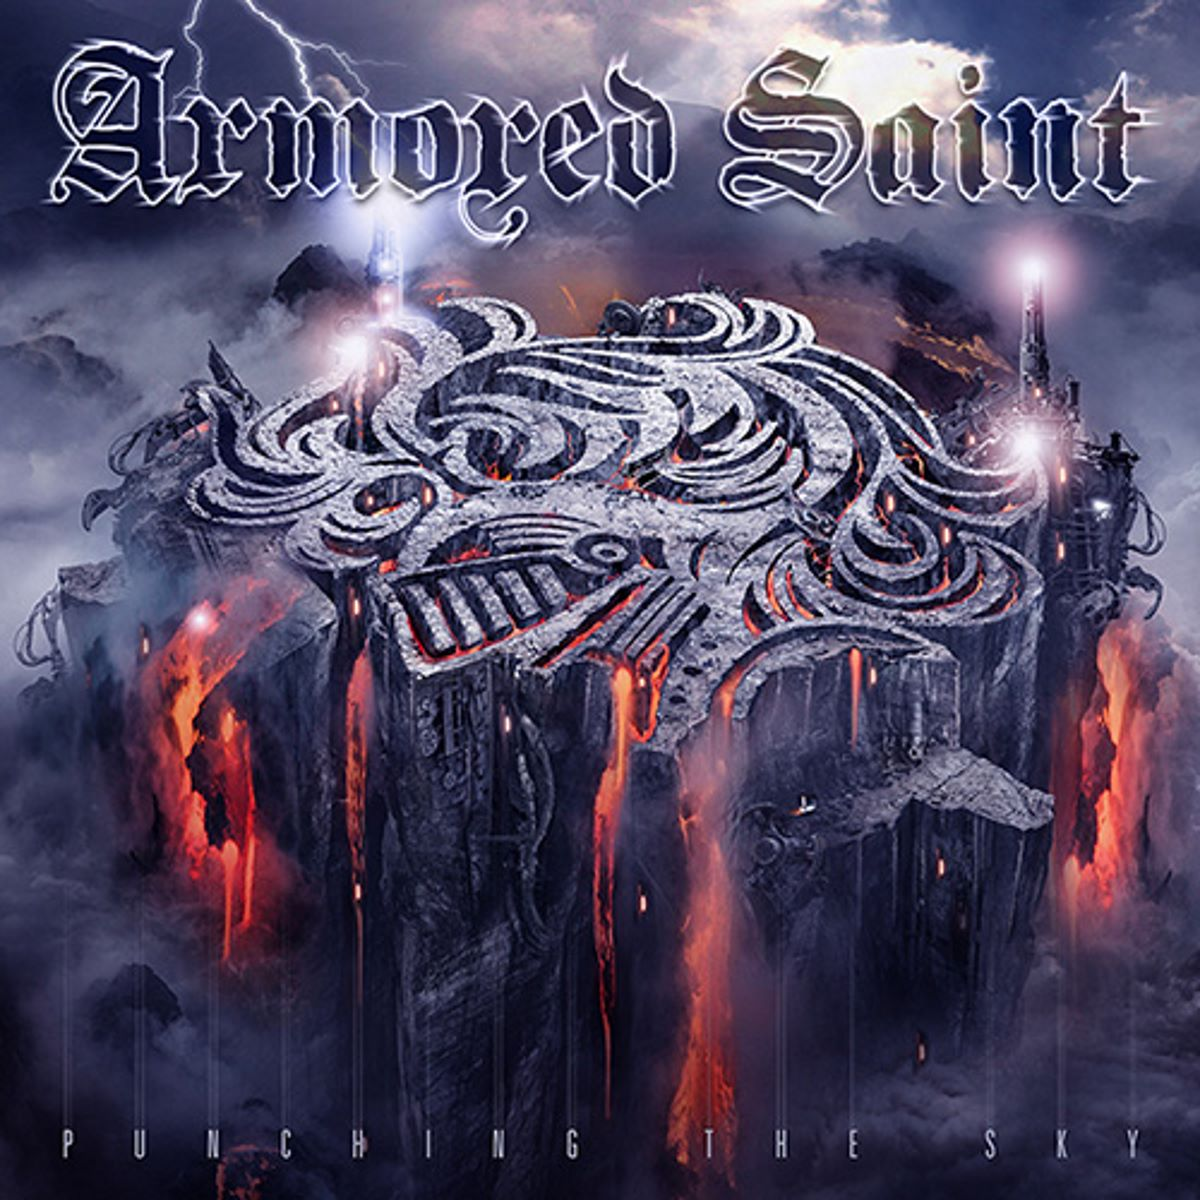 Armored Saint - Punching The Sky - album cover